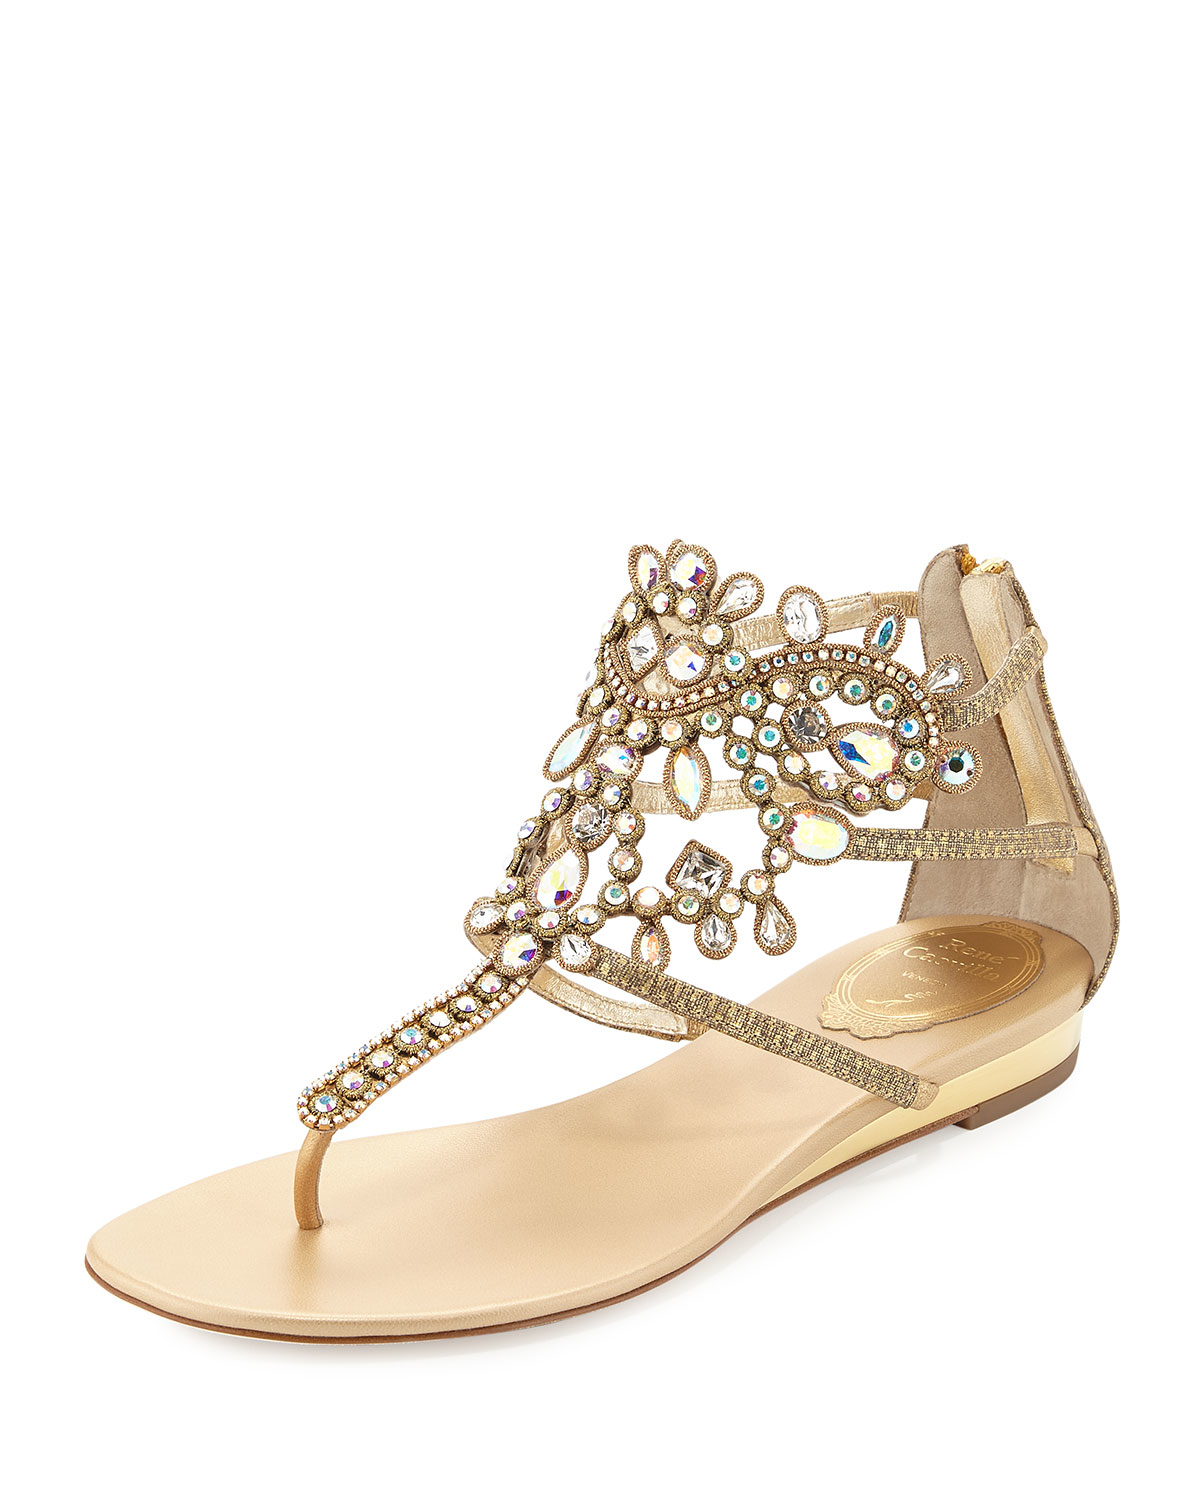 Rene Caovilla Crystal Embellished Leather Sandals In